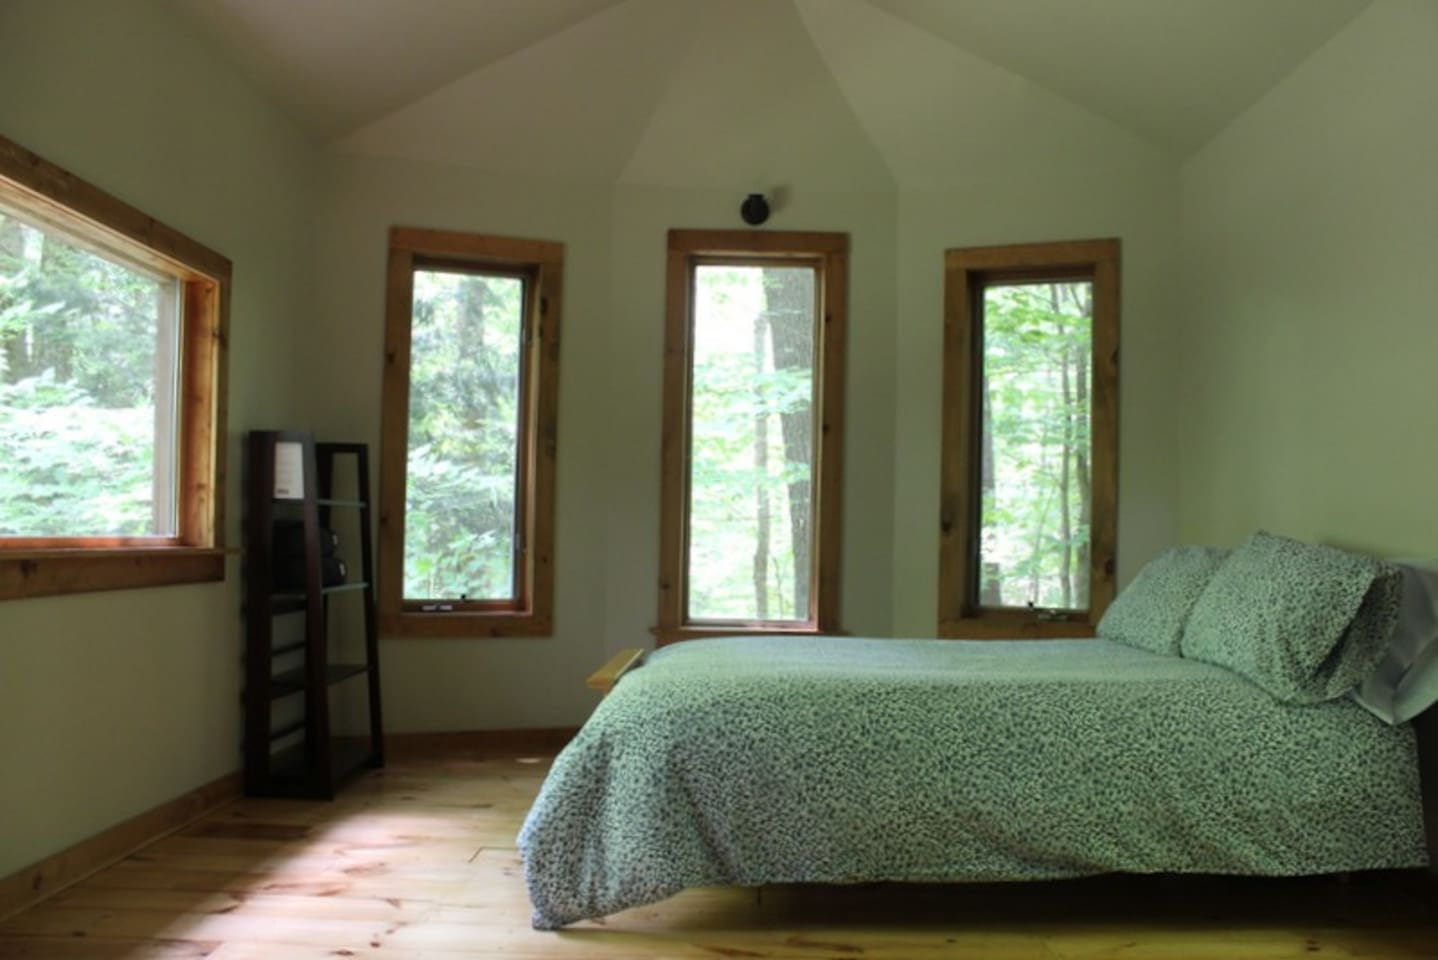 Comfortable bed with warm bedding and surrounded by views of the forest.